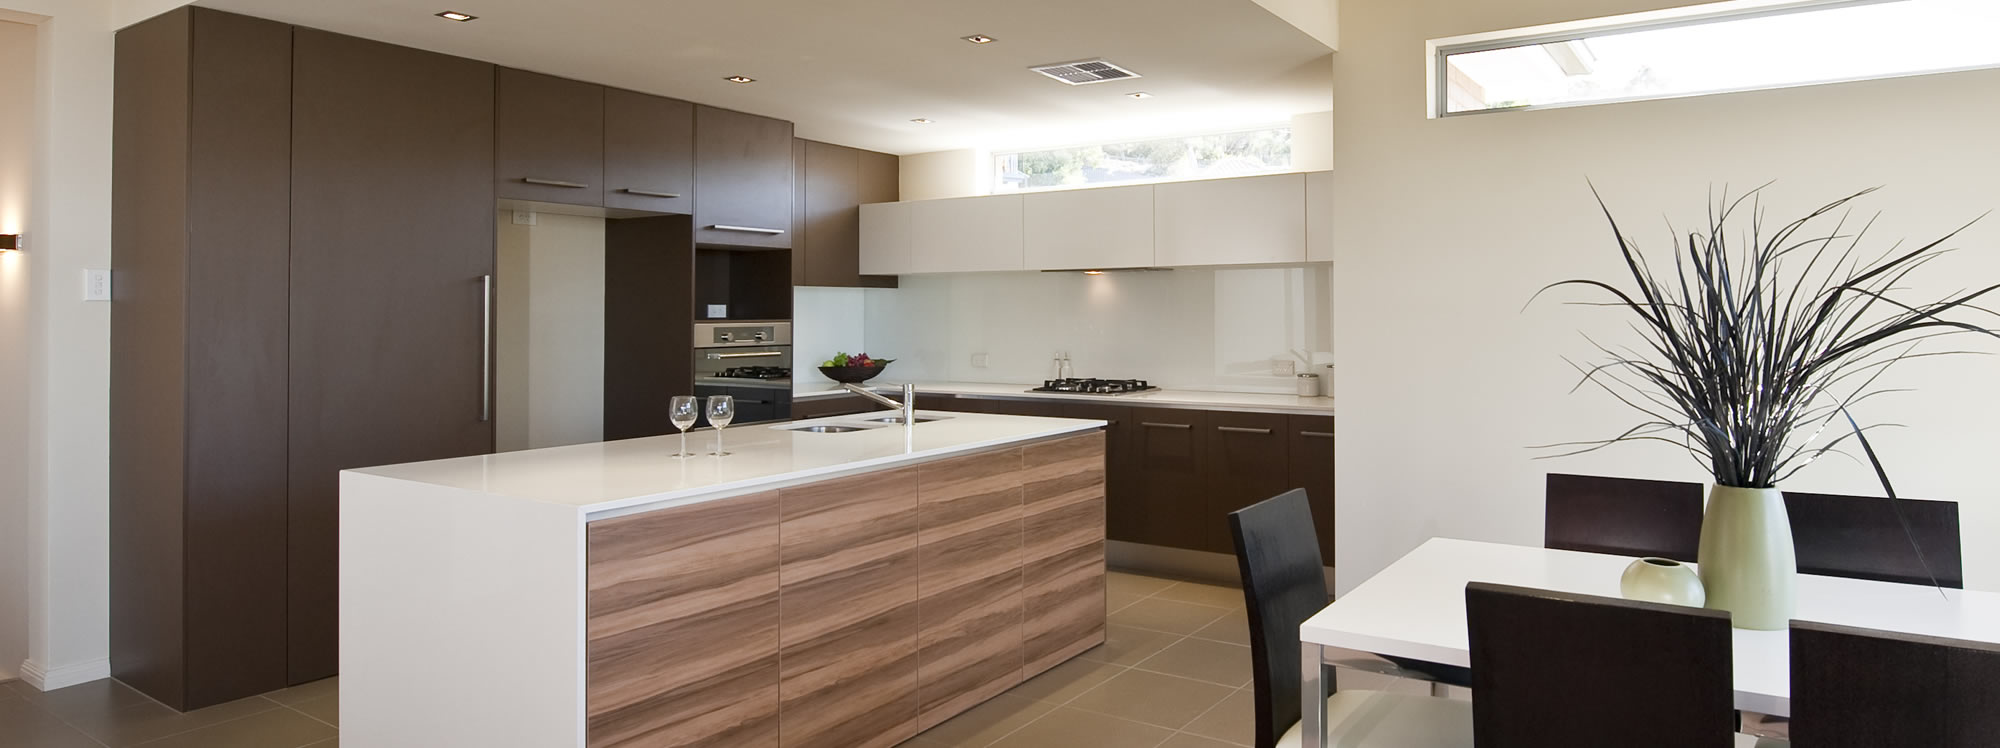 Abj Kitchens Adelaide Outdoor Kitchens Designs Adelaide